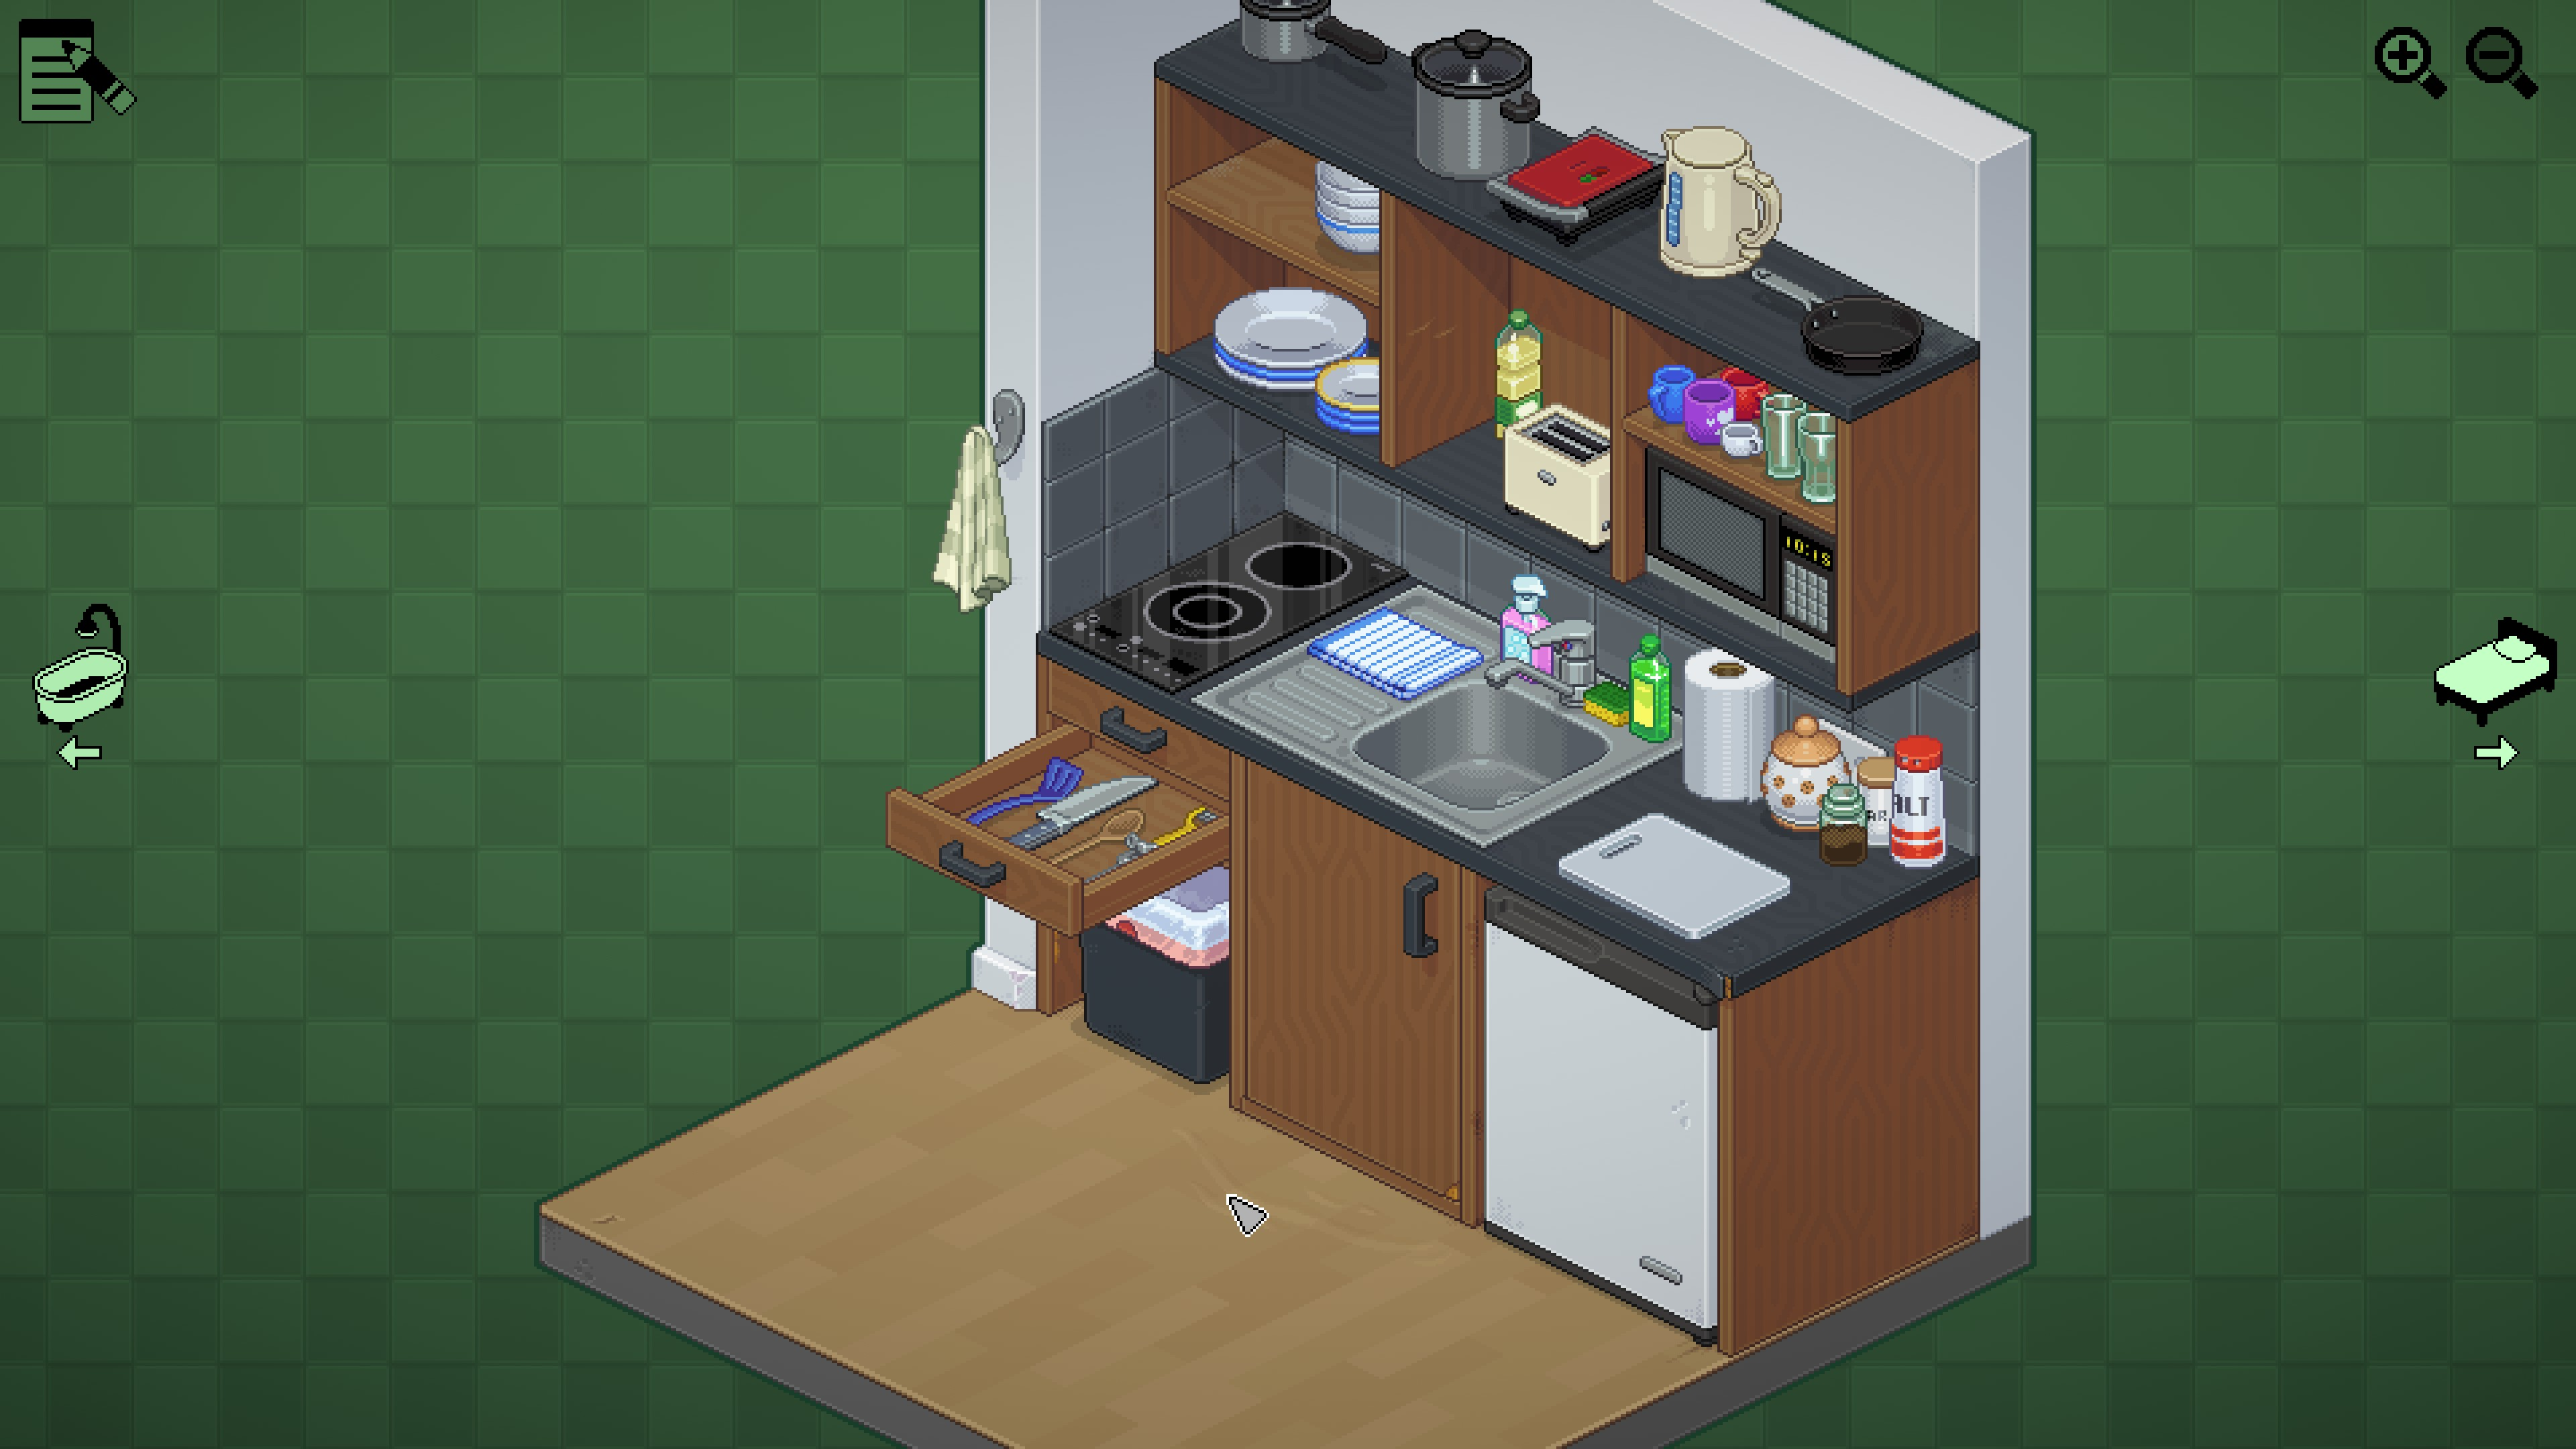 Unpacking. A tiny kitchenette with mismatched dishes and a cluttered counter